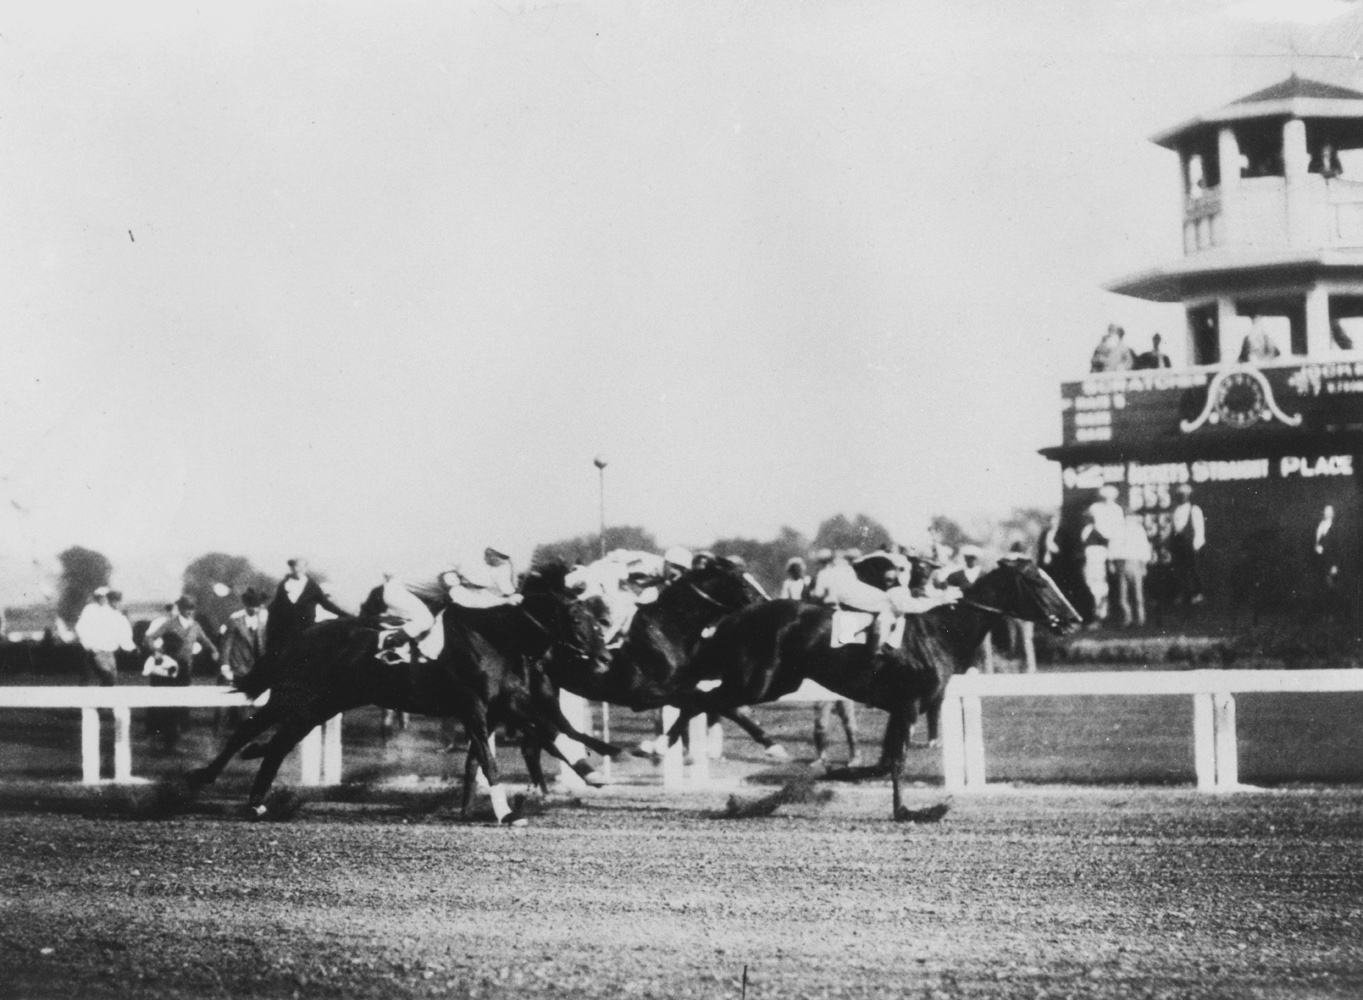 Sarazen (G. Babin up) defeating Epinard and Mad Play in the 1924 International Special at Latonia (Keeneland Library Cook Collection/Museum Collection)